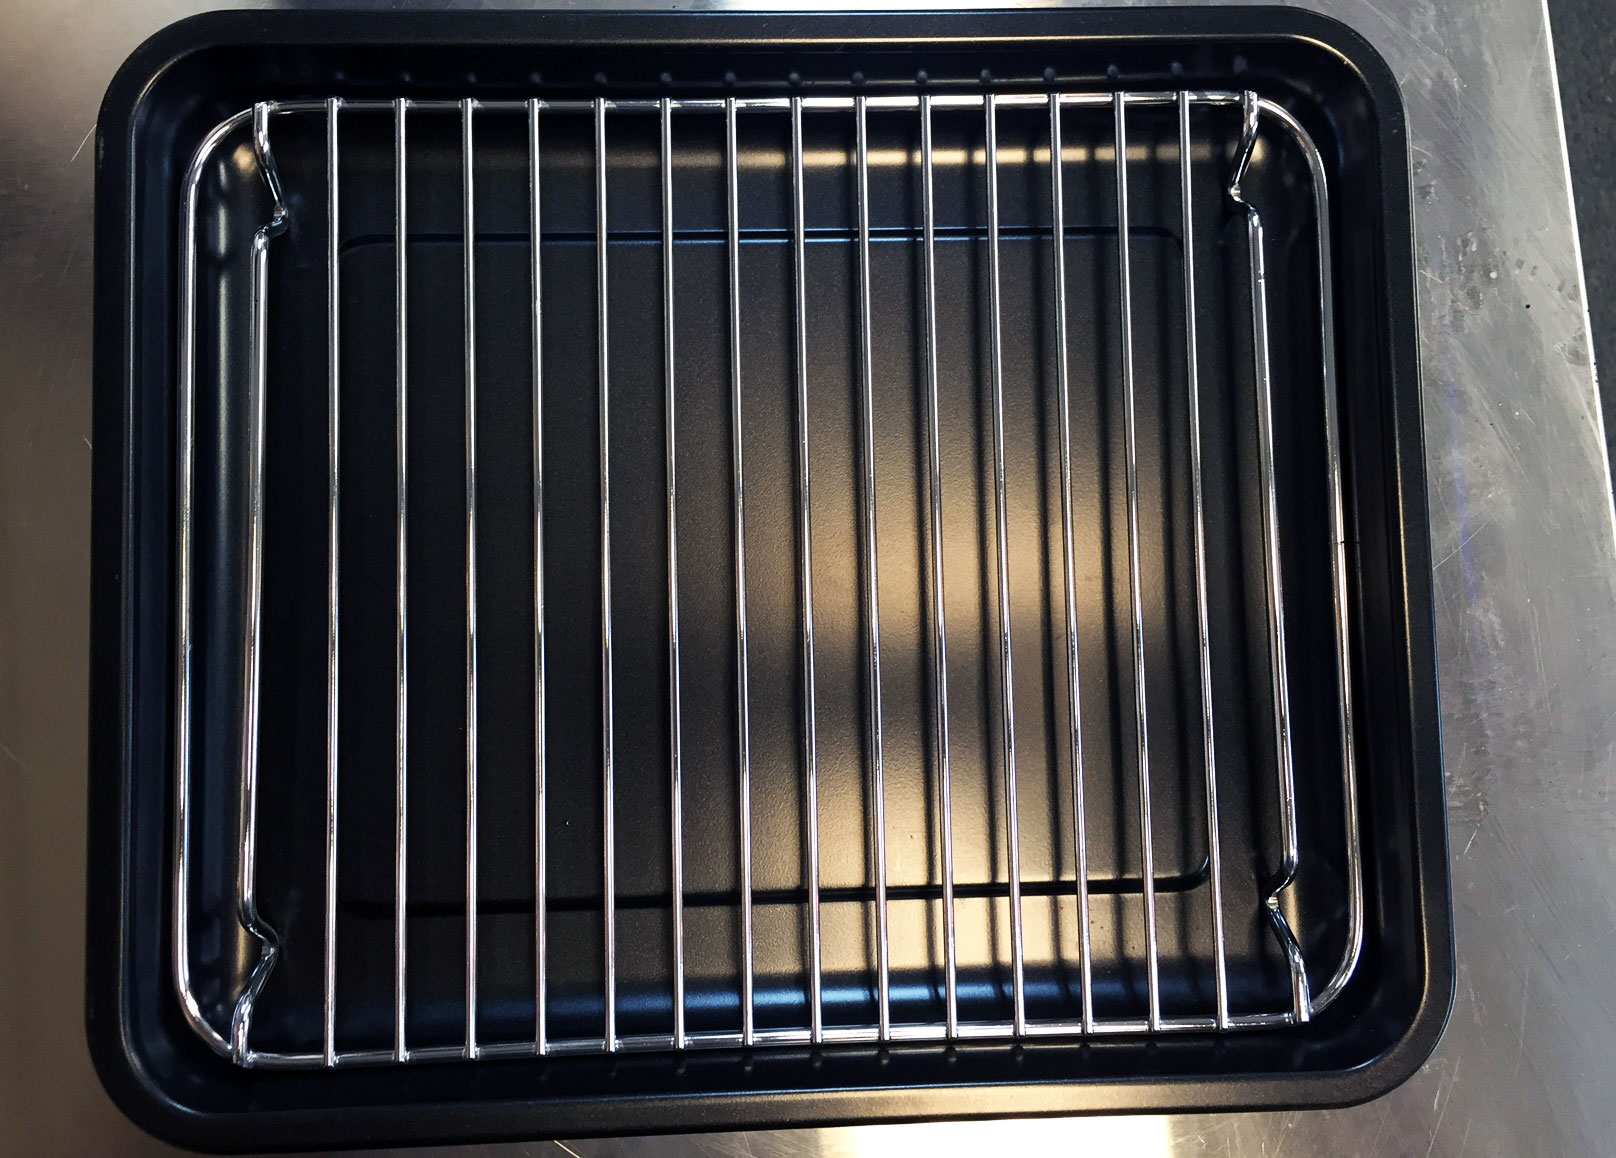 Cuisinart-TOB-206N1-pan-with-rack